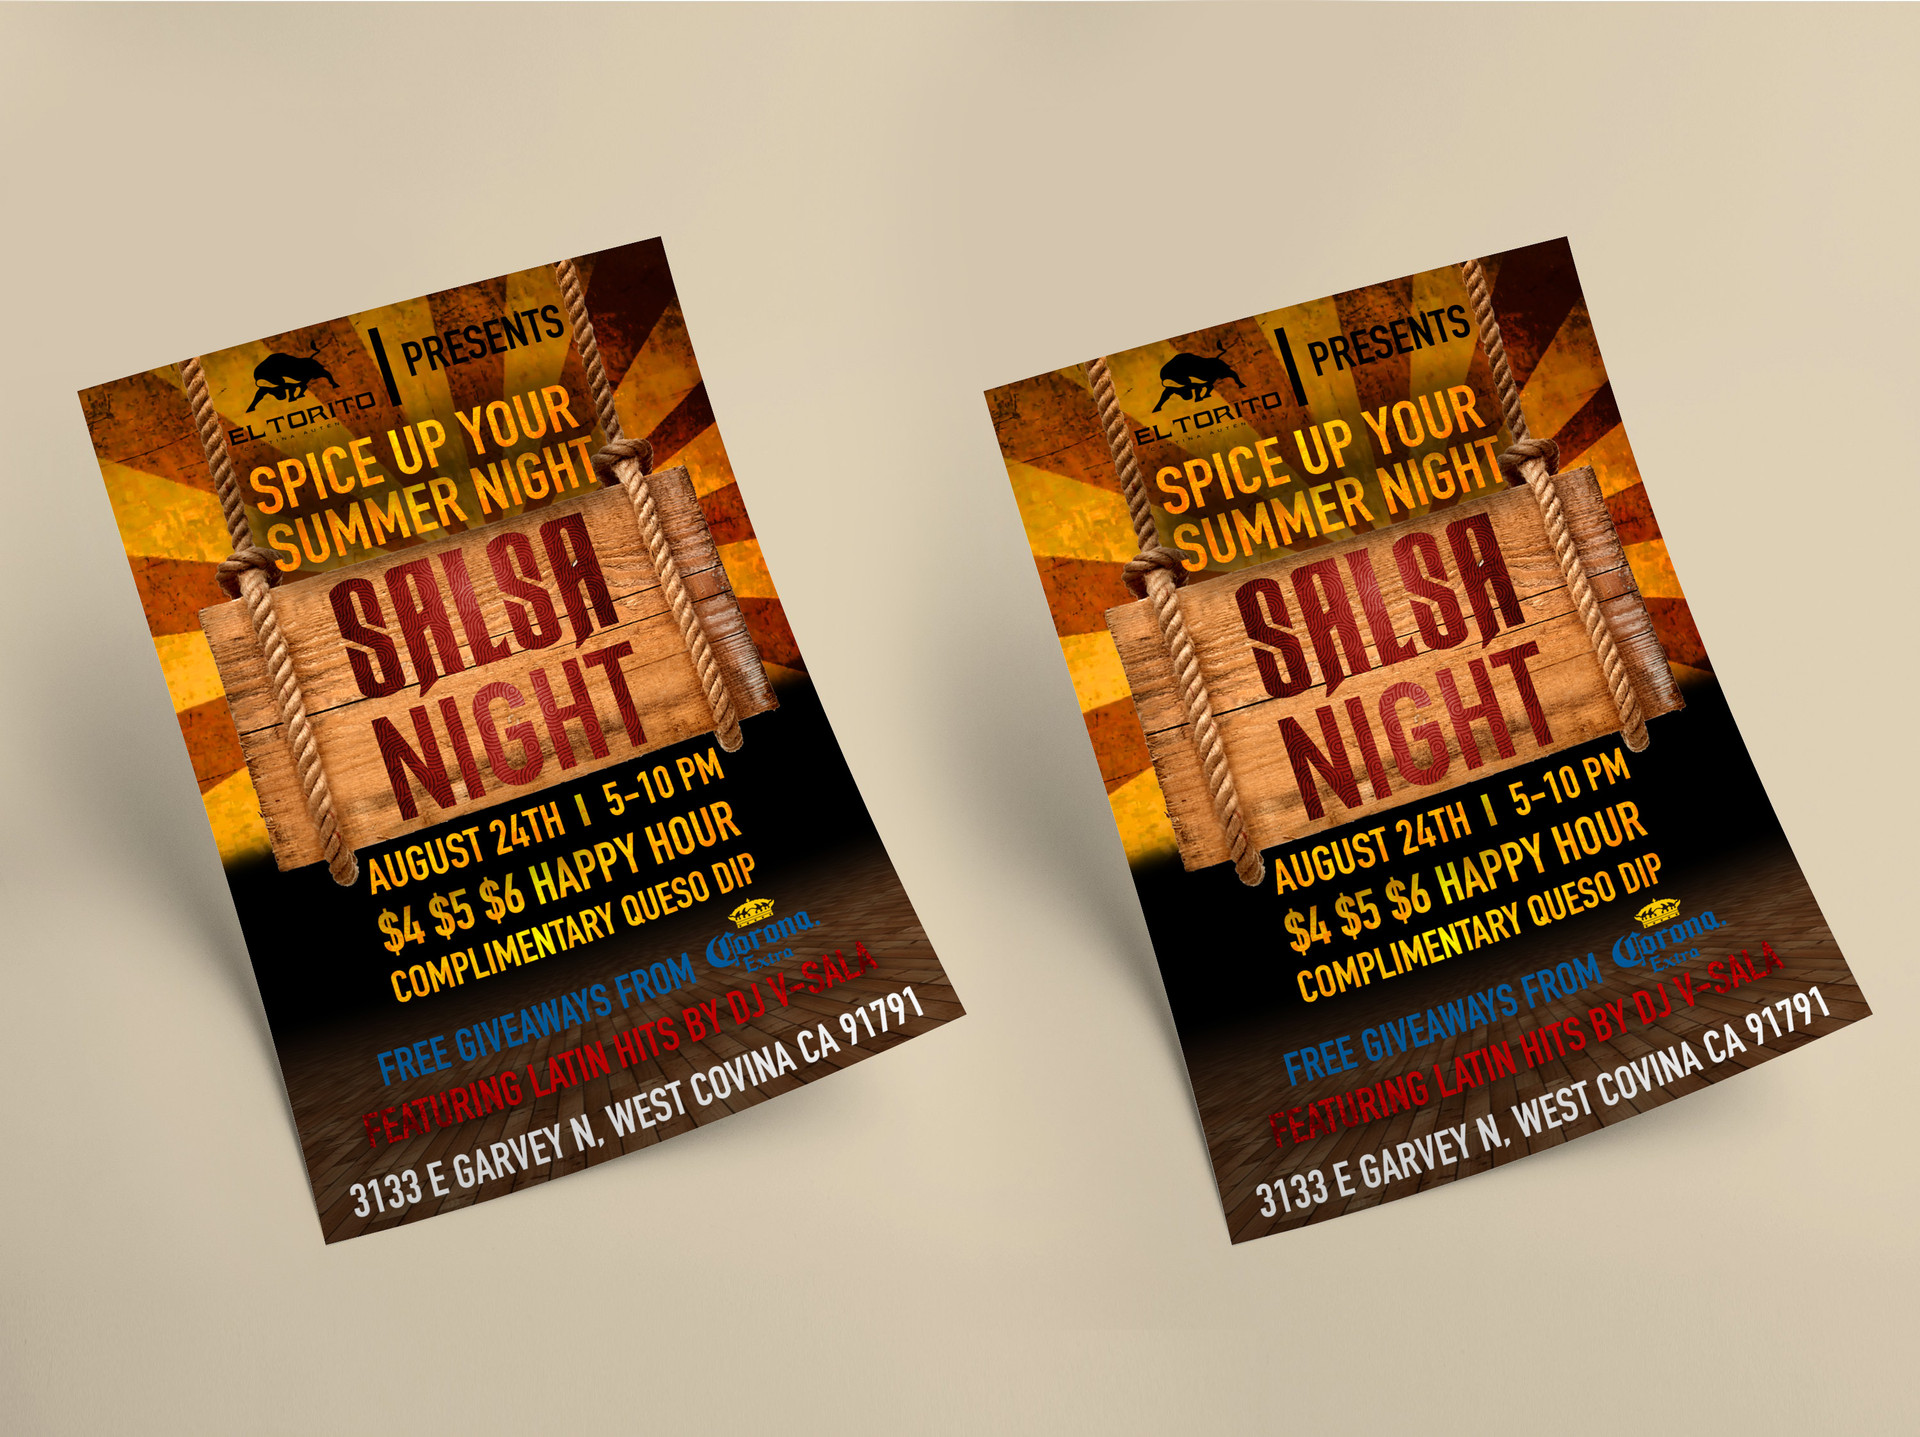 El Torito promotional flyer design